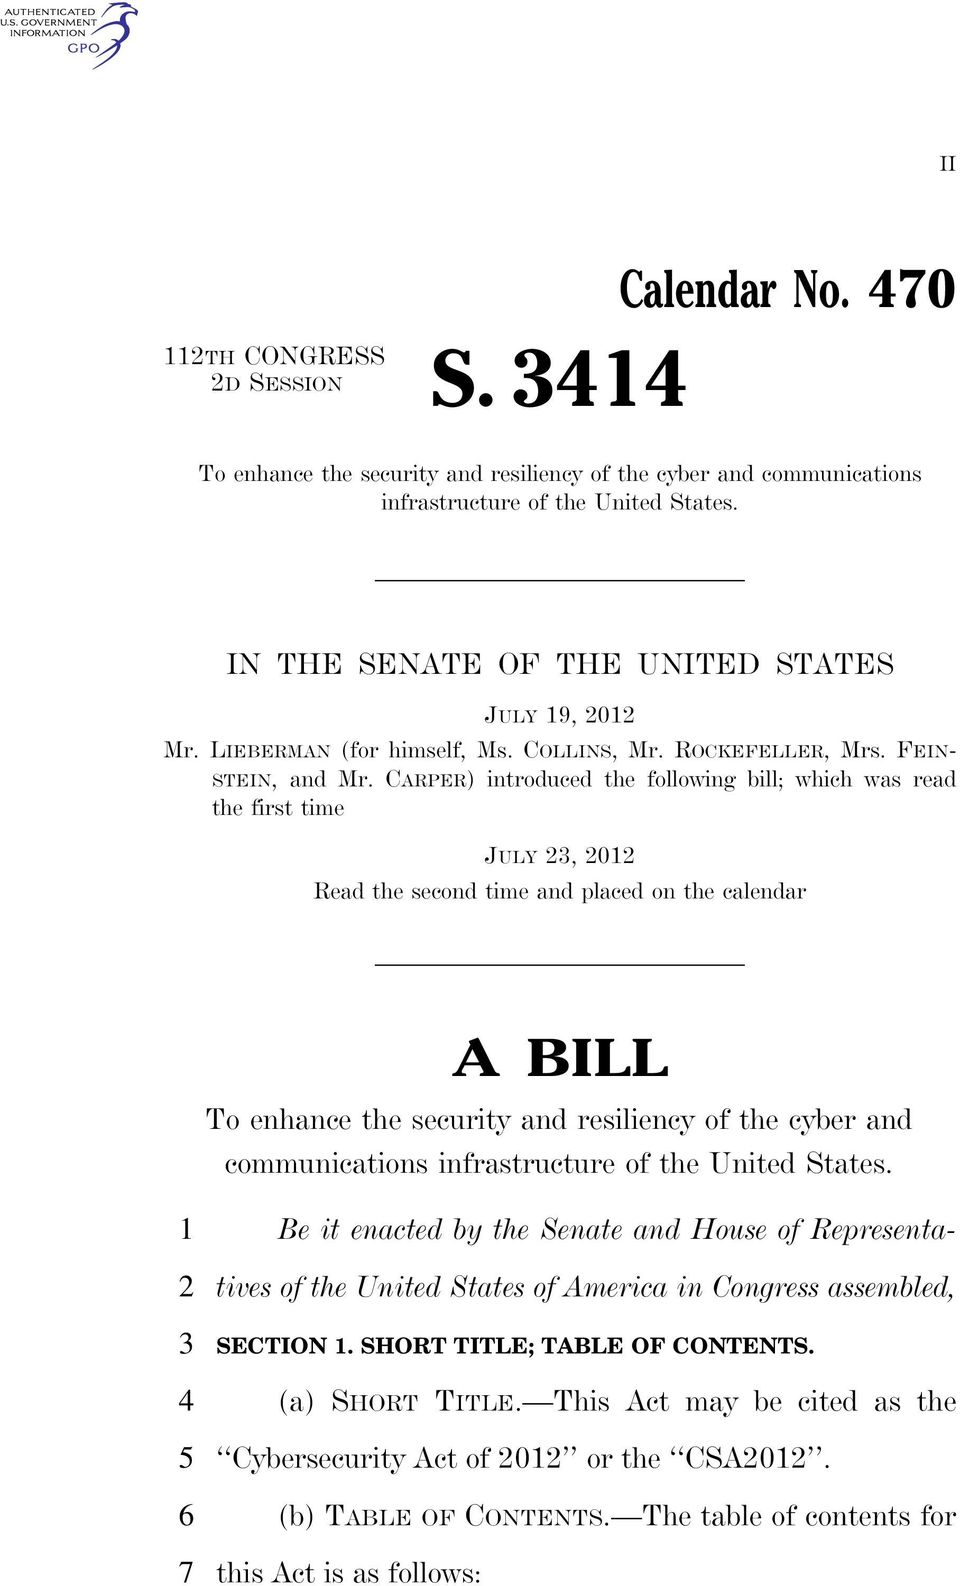 CARPER) introduced the following bill; which was read the first time JULY, Read the second time and placed on the calendar A BILL To enhance the security and resiliency of the cyber and